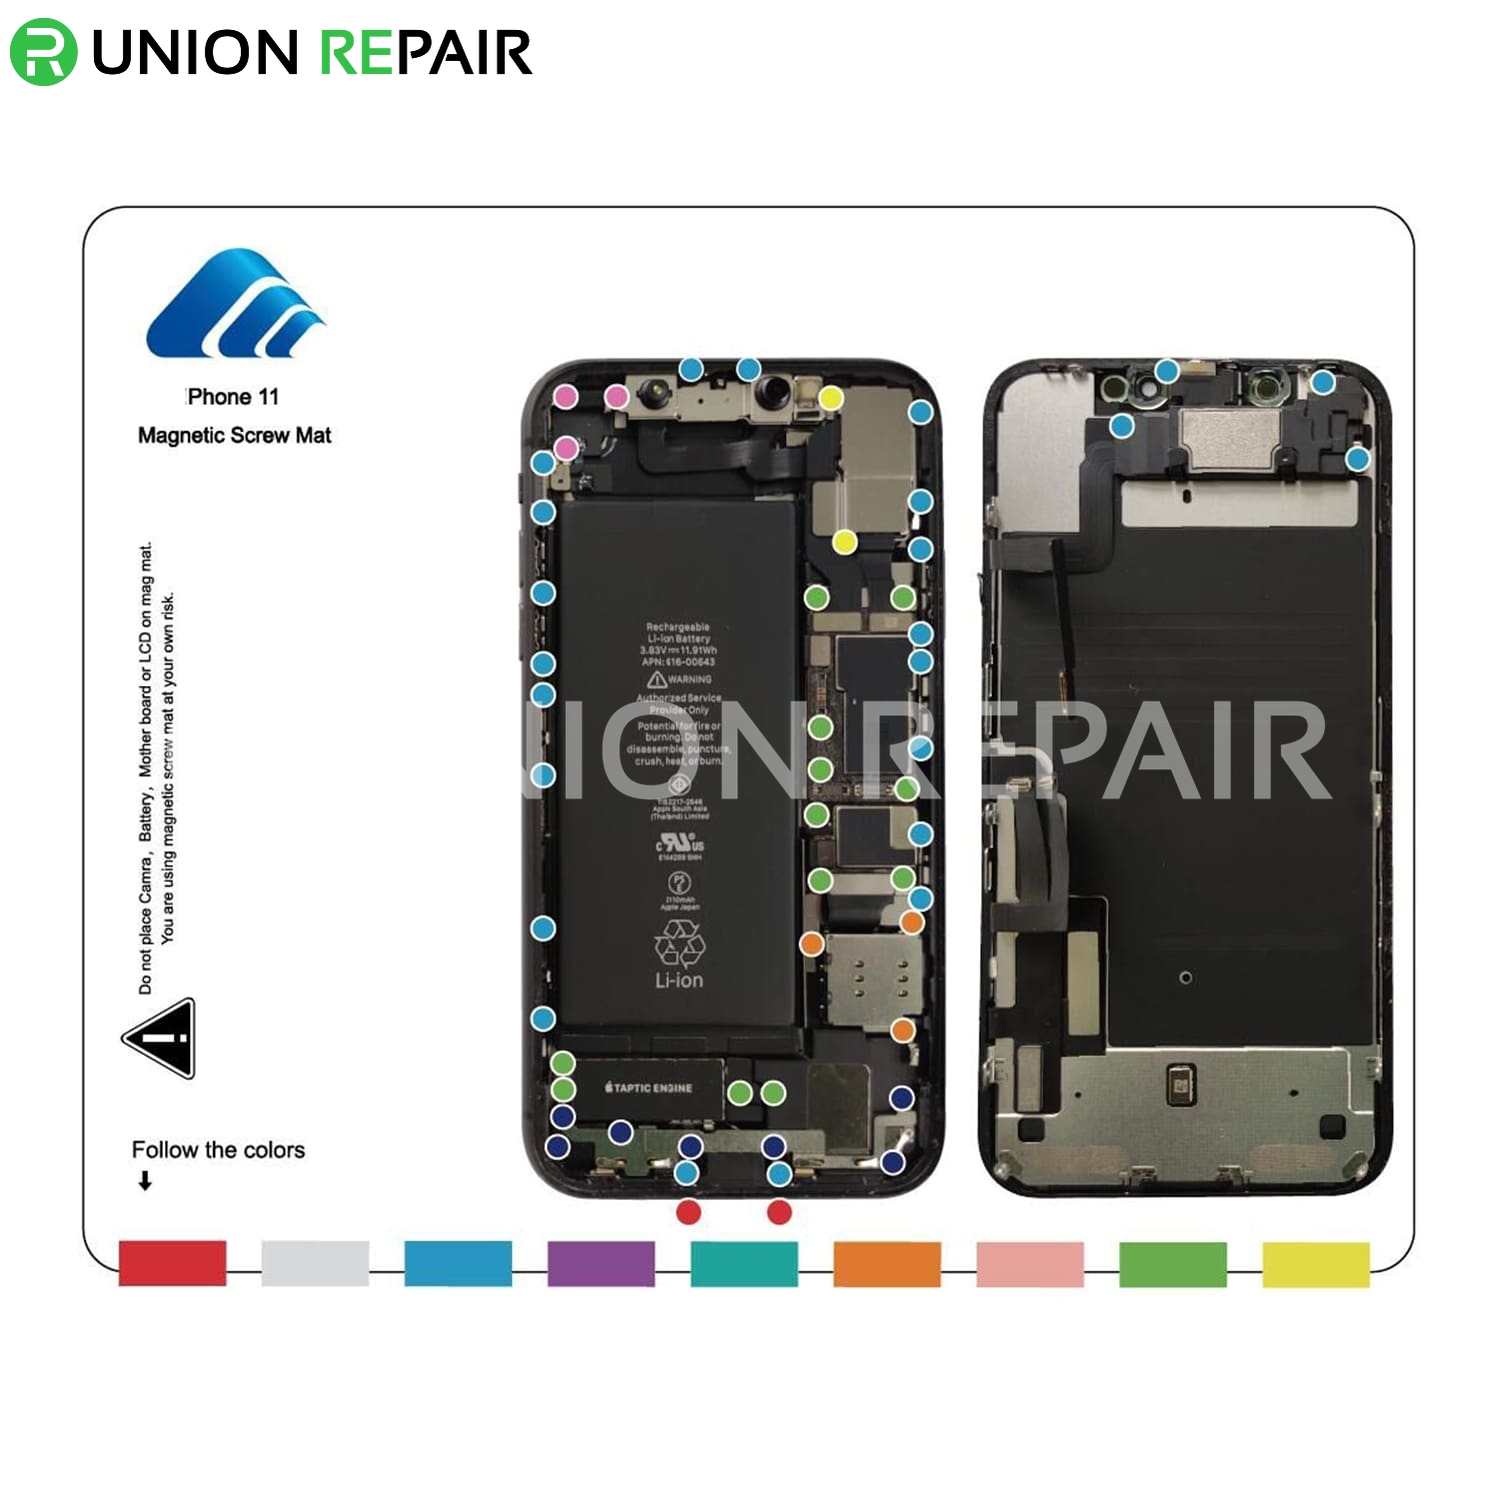 Magnetic Screw Mat for iPhone 11